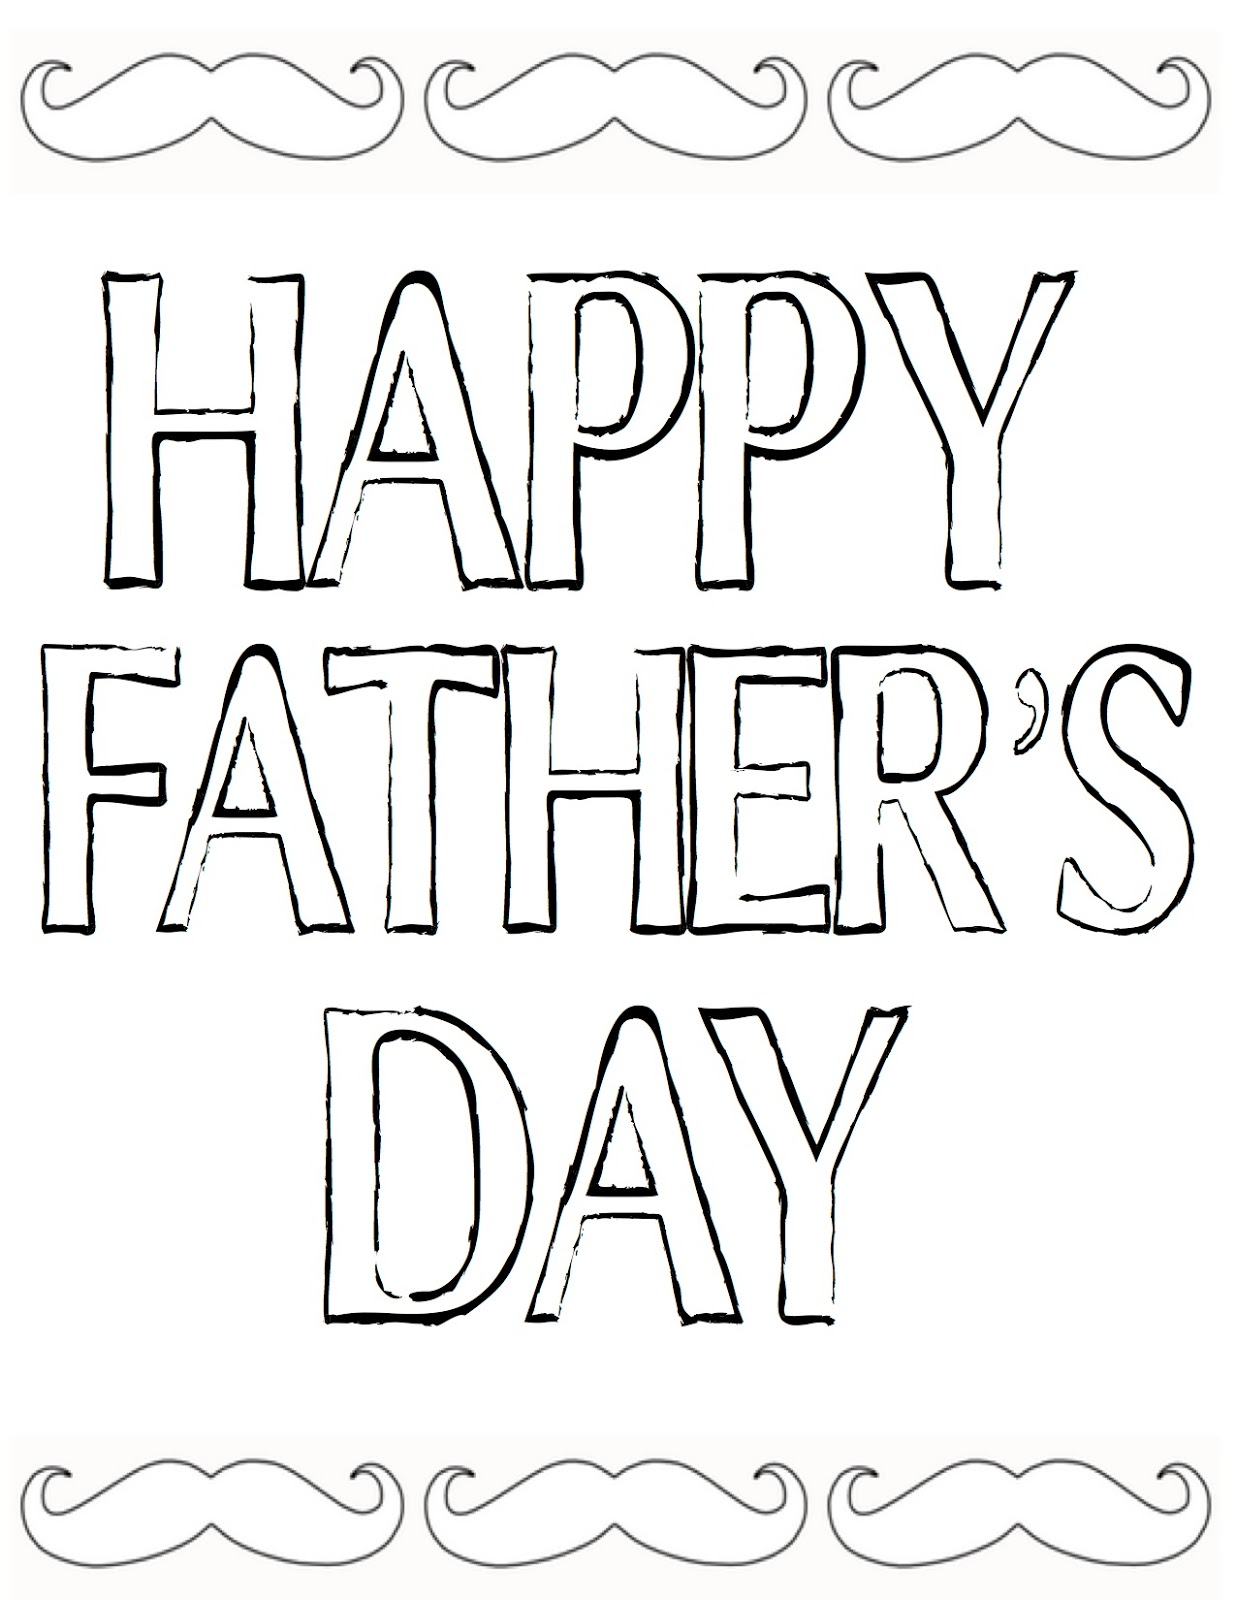 Free happy fathers day coloring pages printable sheets for Happy fathers day grandpa coloring pages